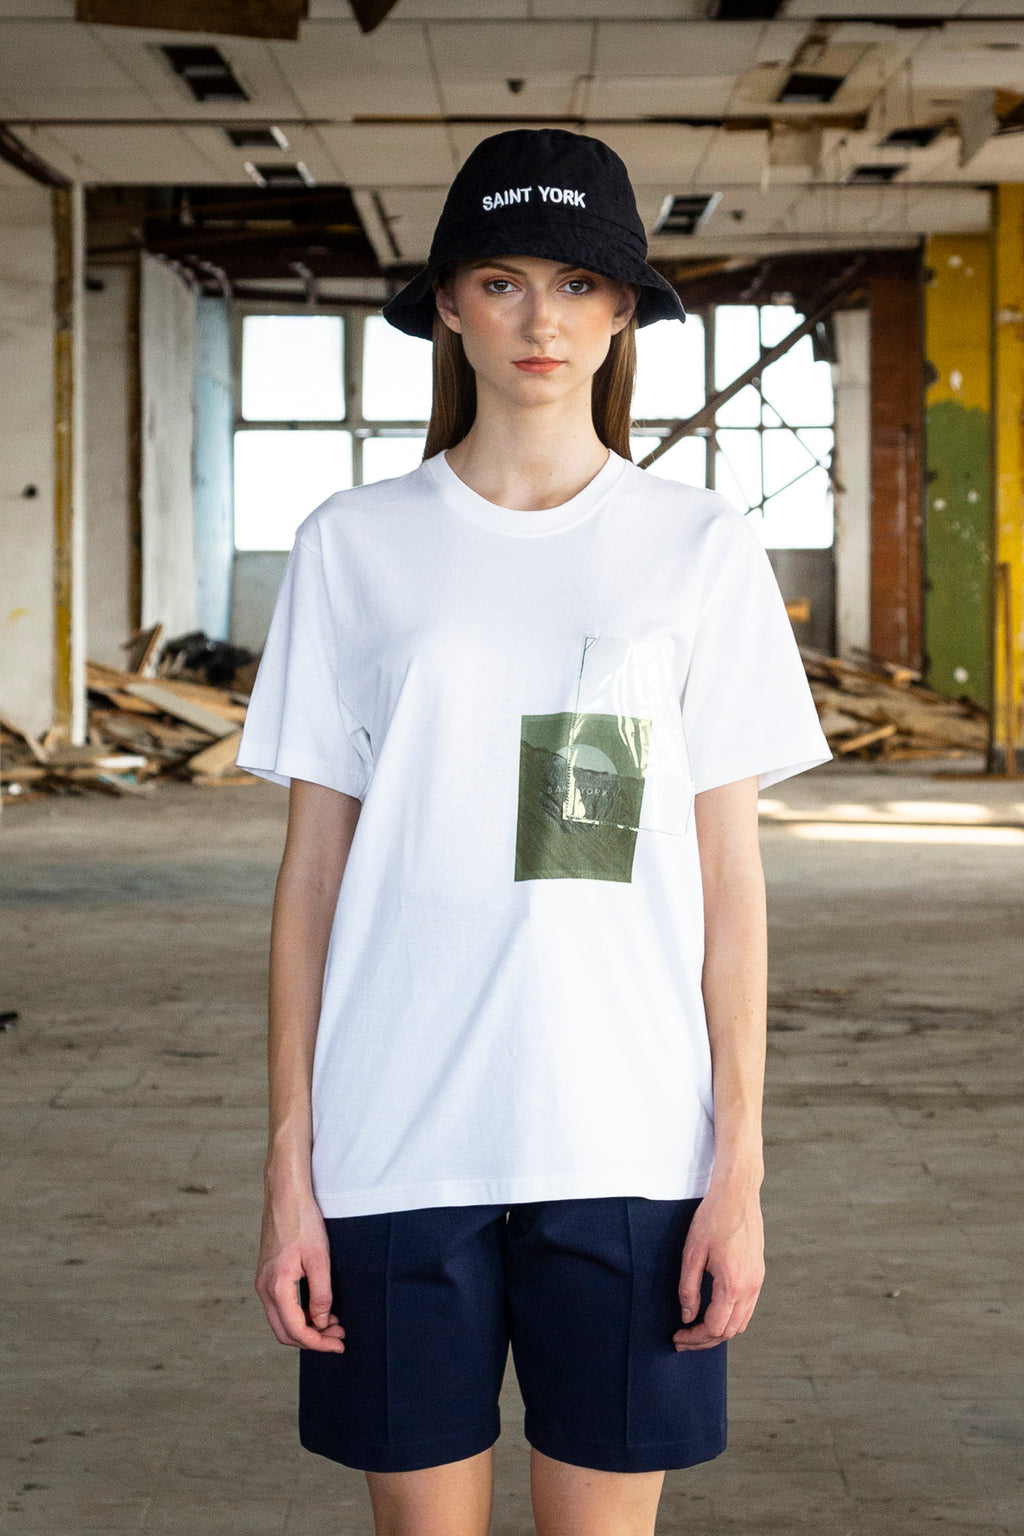 Brighton T-shirt - Saint York